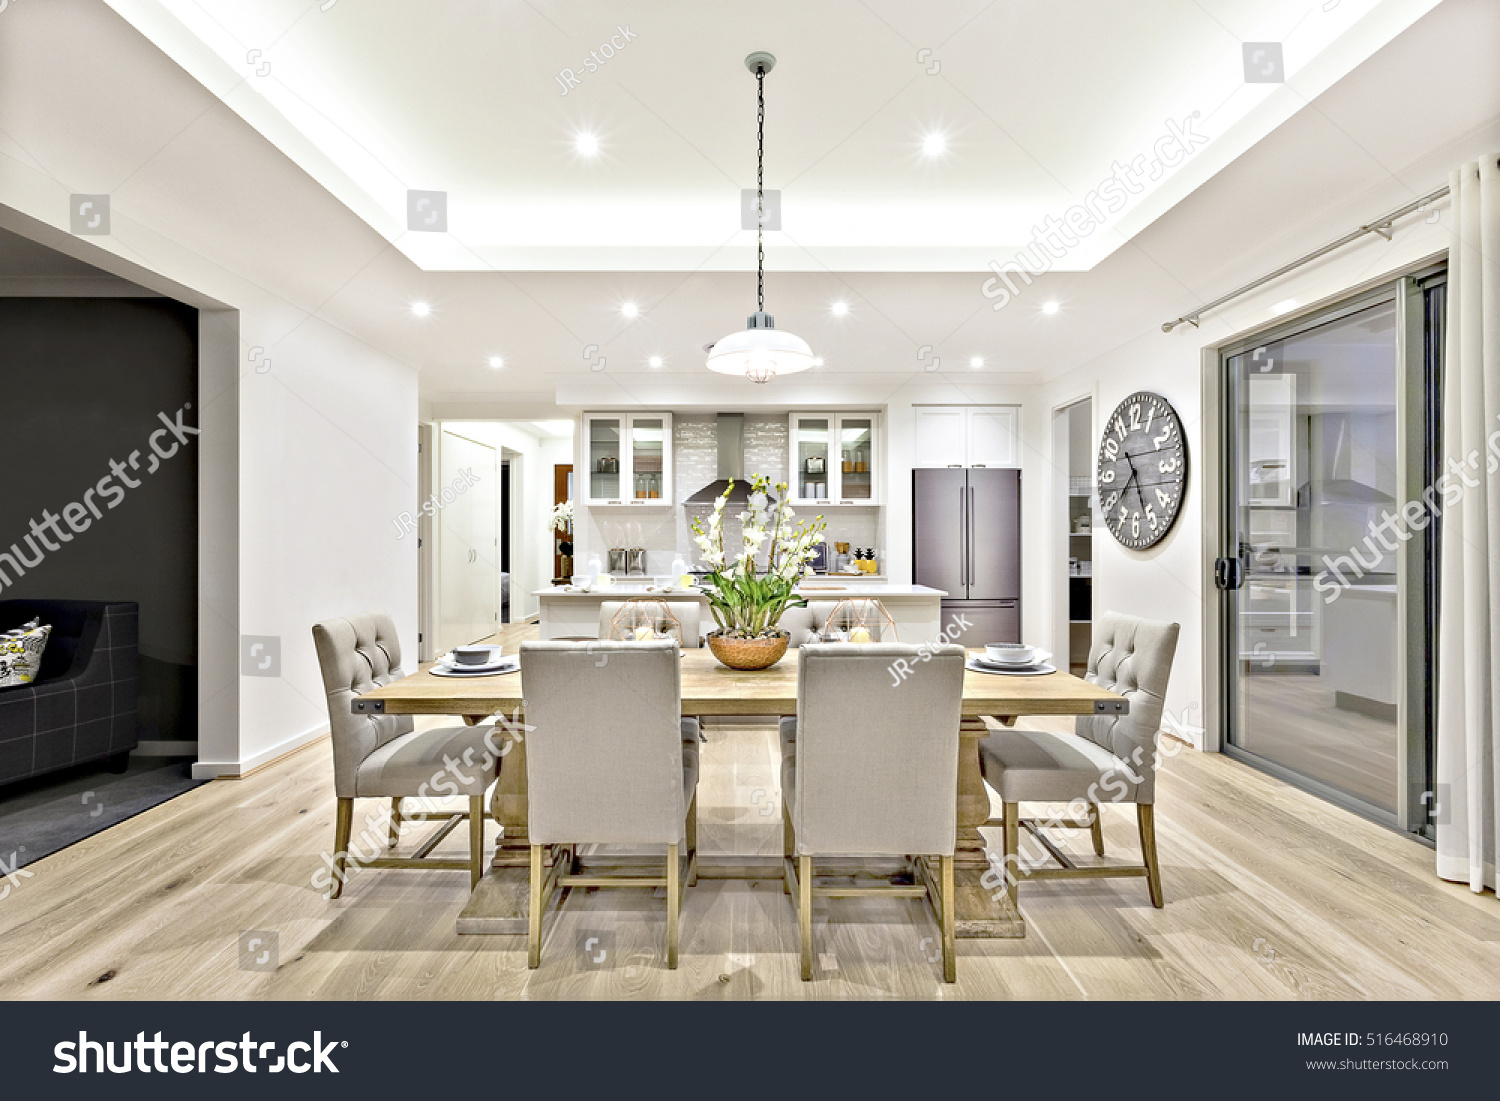 Modern Dining Room With Hanging Lamps On, There Are Chairs And Table Setup  With Fancy